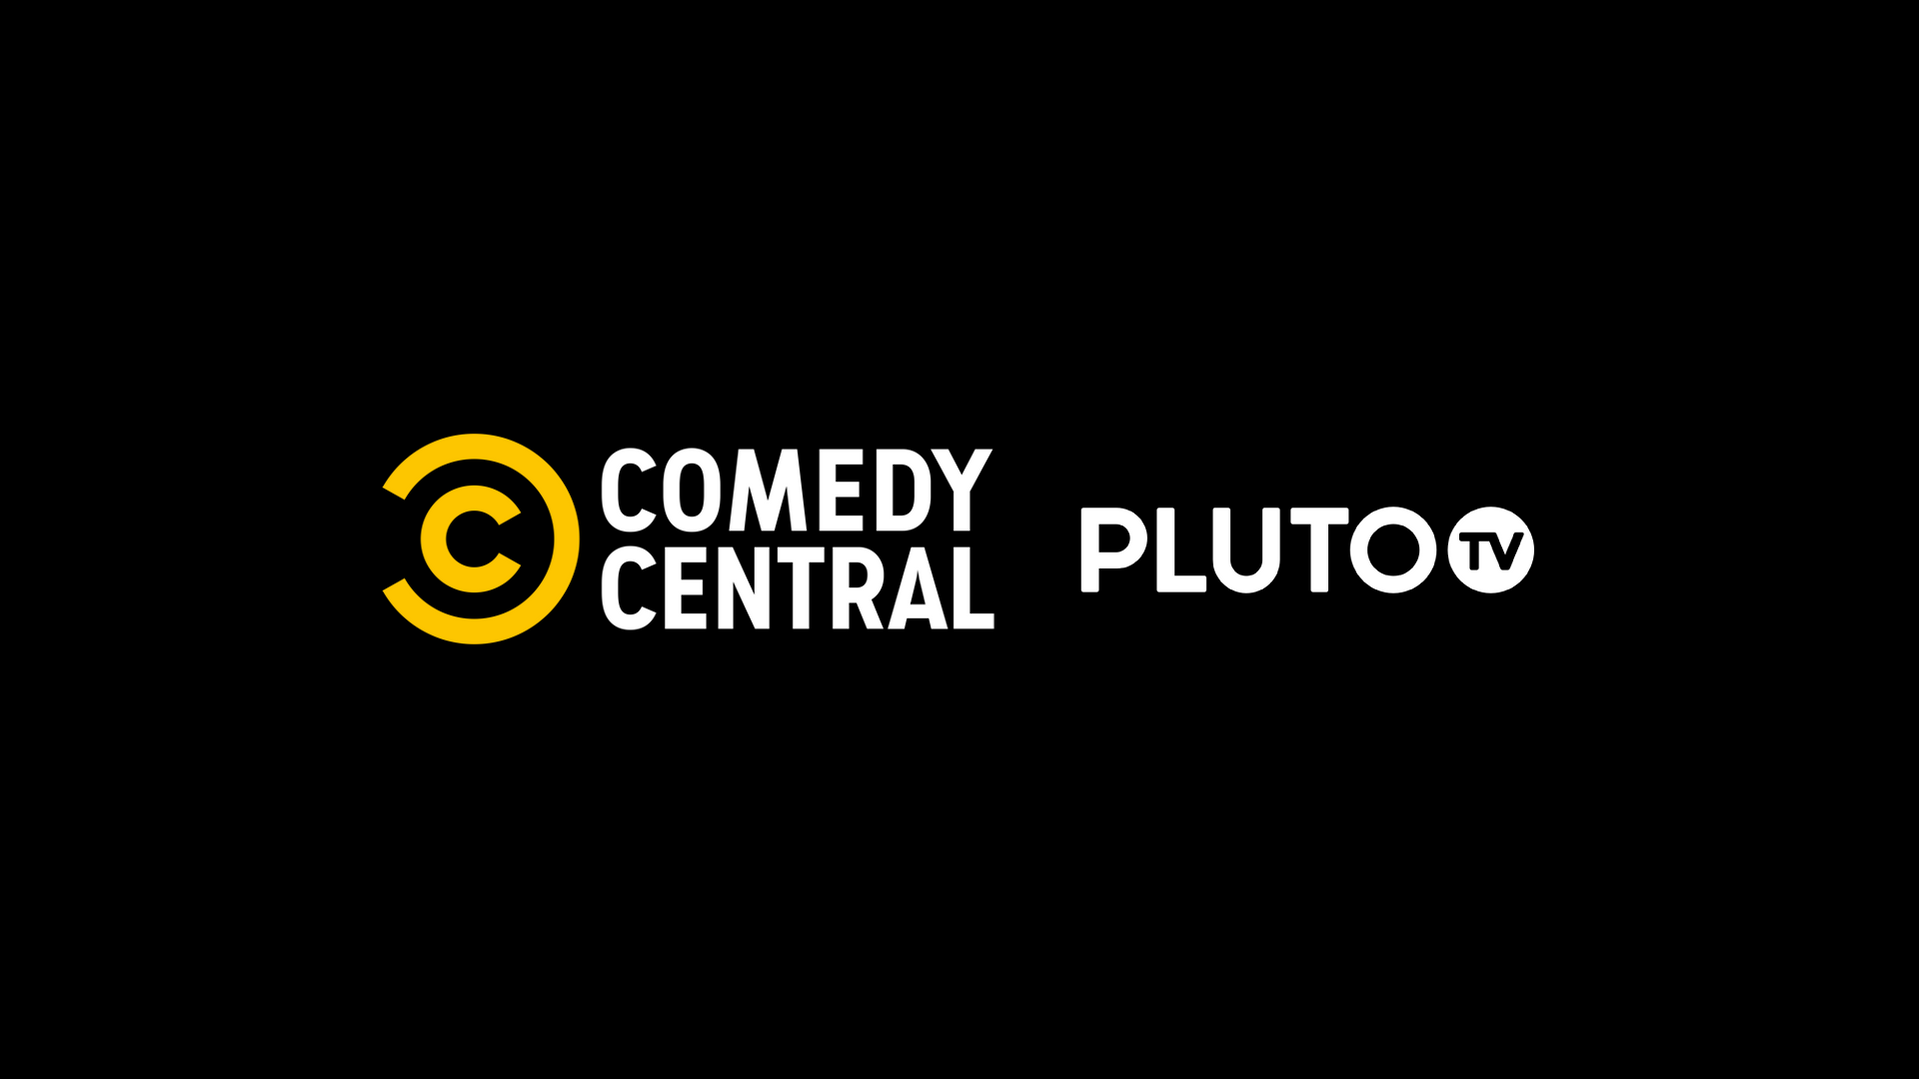 CC-PLUTO-TV_CHANNEL_FEATURED_72dpi_1920x